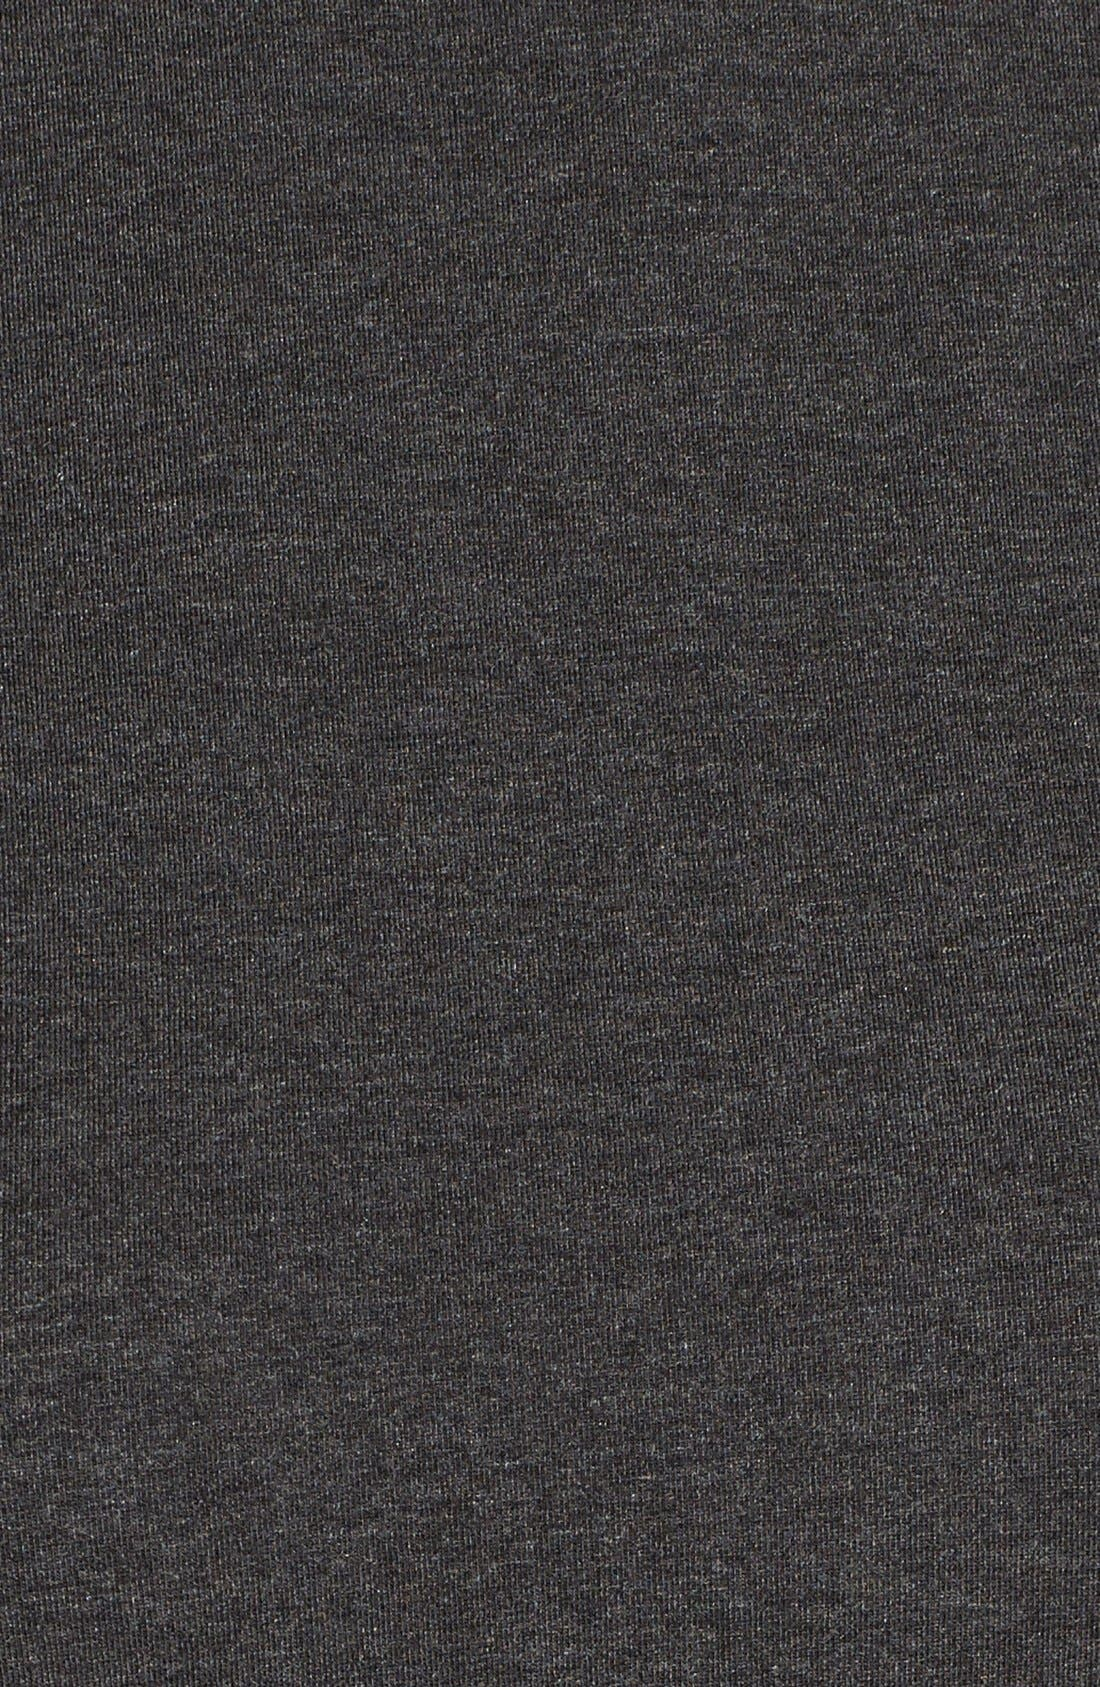 EILEEN FISHER,                             Lightweight Tencel<sup>®</sup> Lyocell Stretch Jersey Top,                             Alternate thumbnail 5, color,                             001